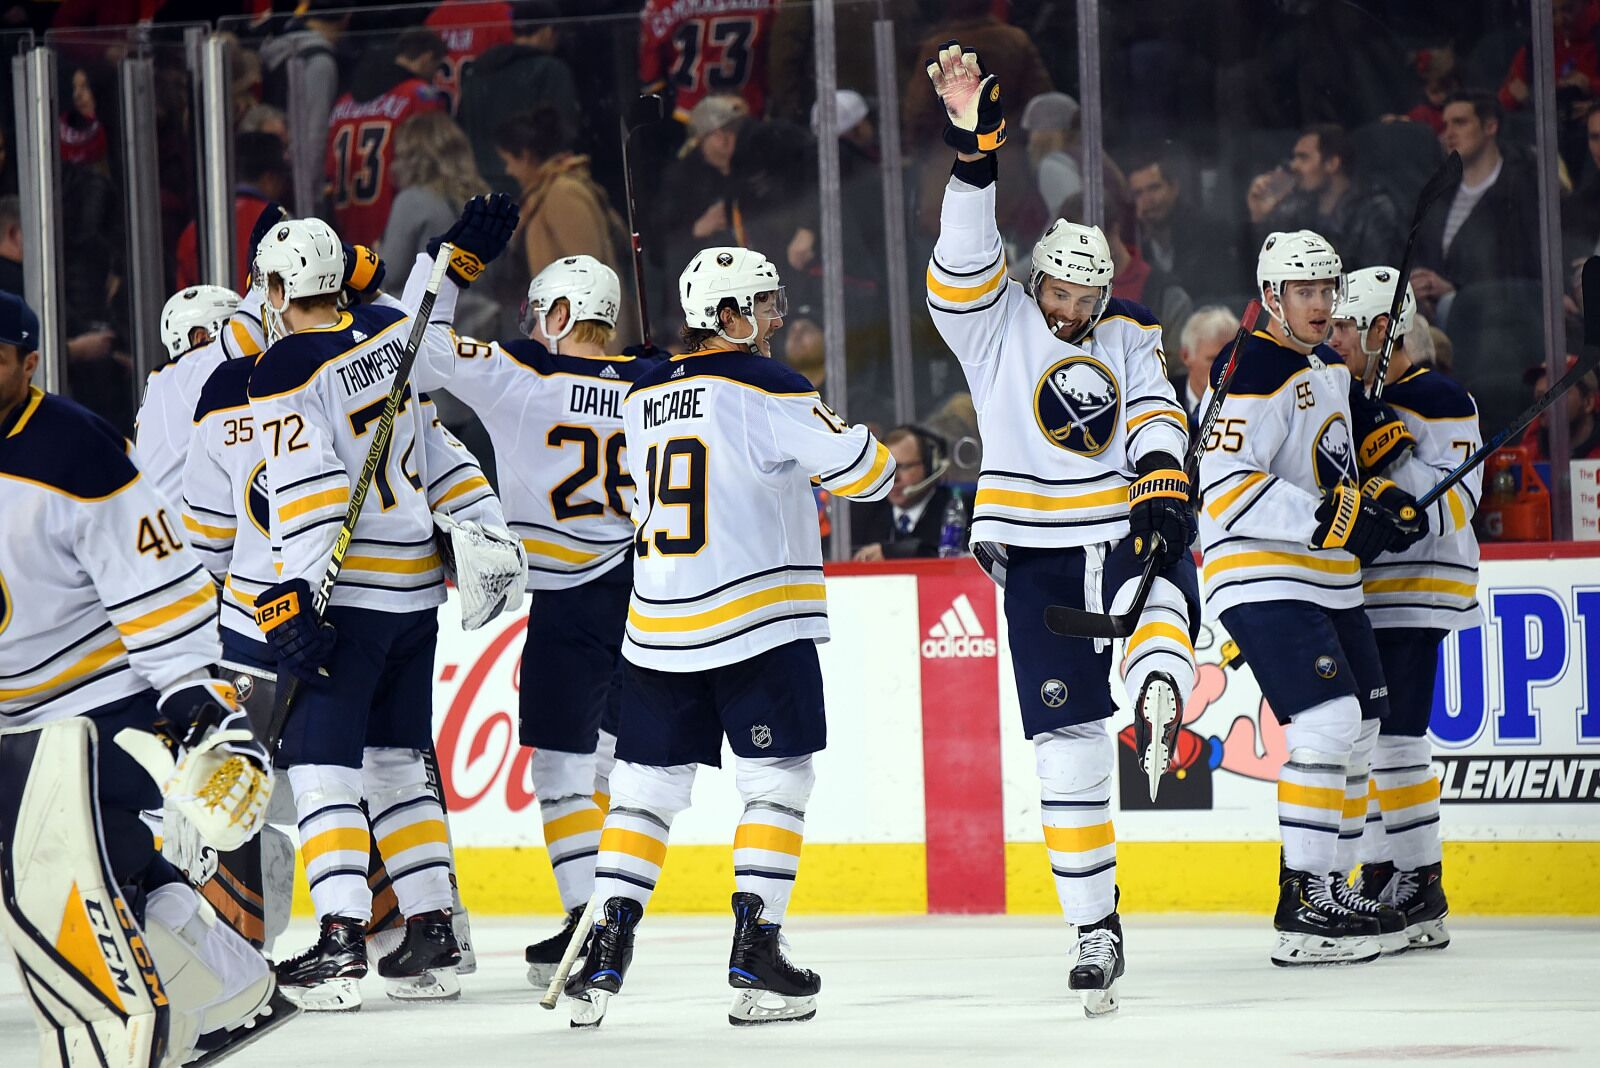 dfb175ad7 NHL: What is the Sabres path to the Stanley Cup playoffs?